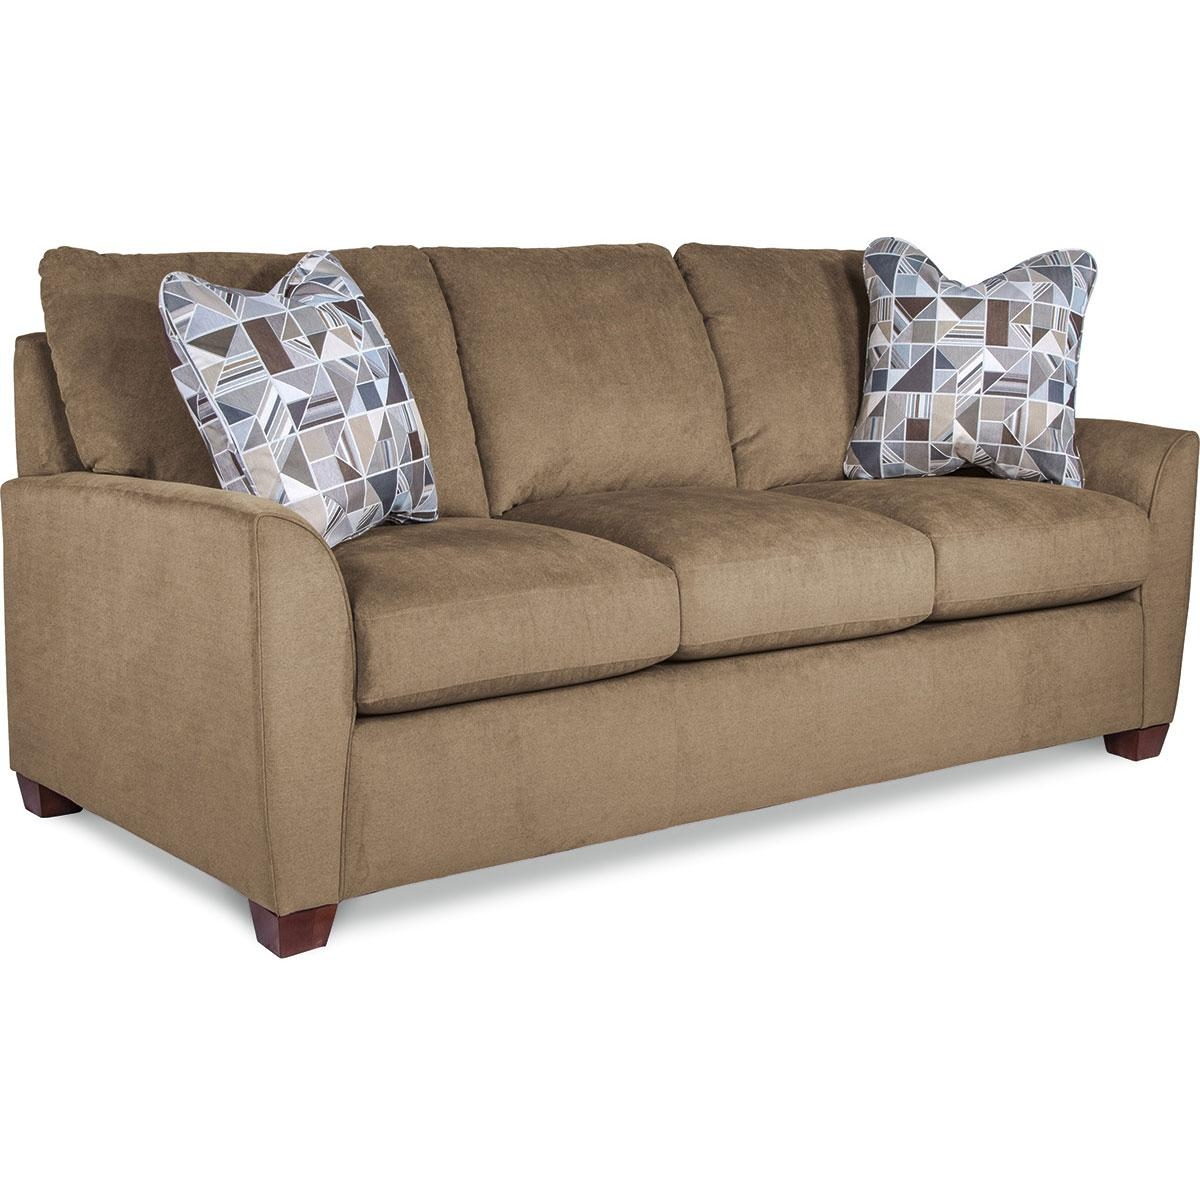 Amy Premier Sofa Intended For Sofas (Image 2 of 20)